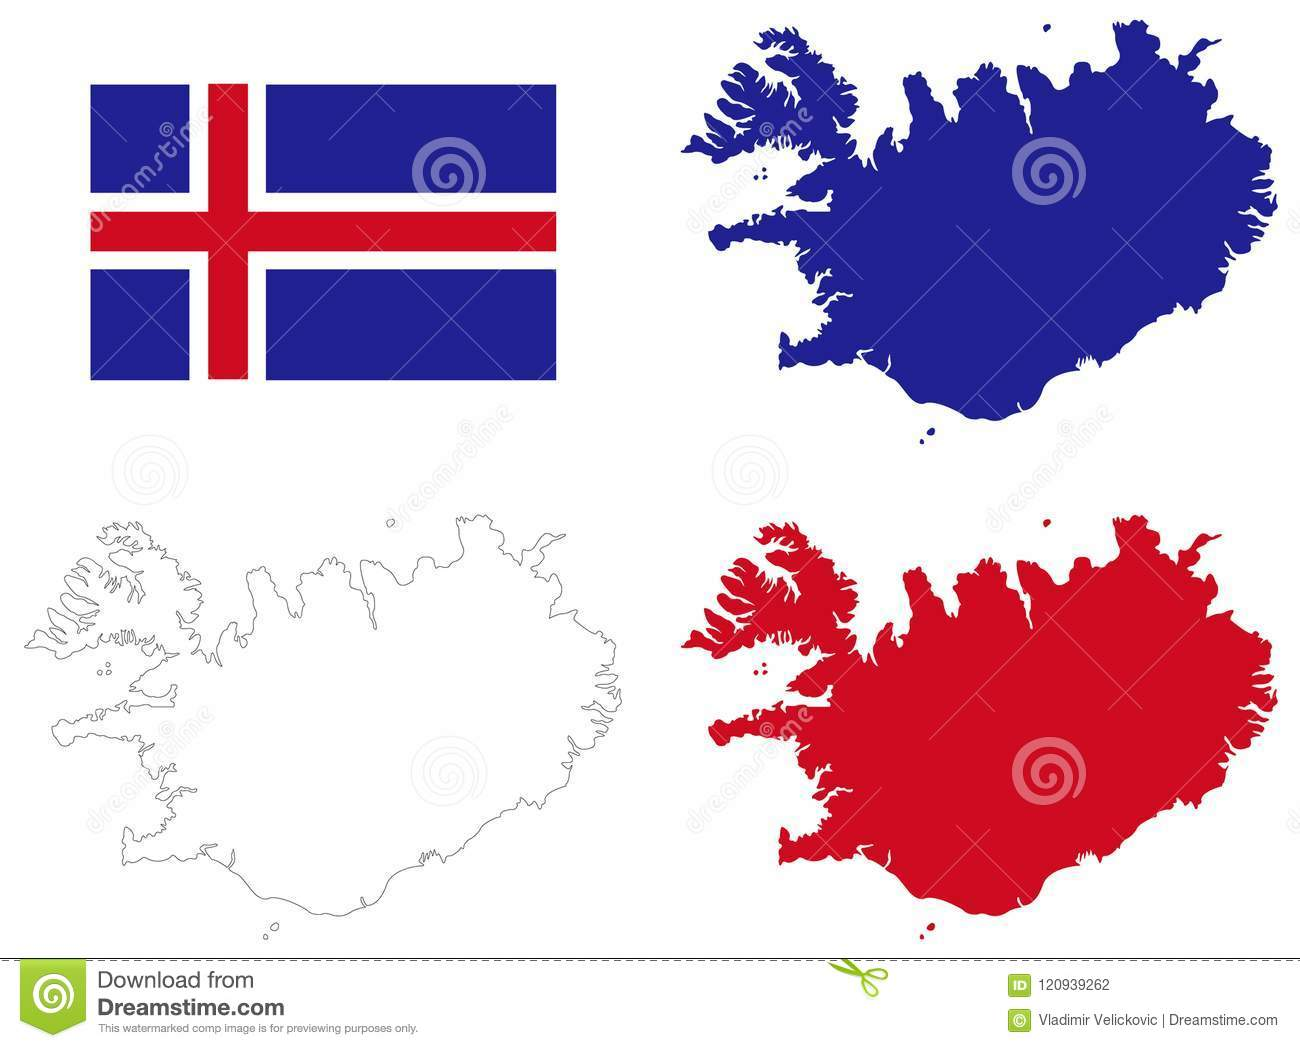 Nordic Europe Map.Iceland Map And Flag Nordic Island Country In Europe Stock Vector